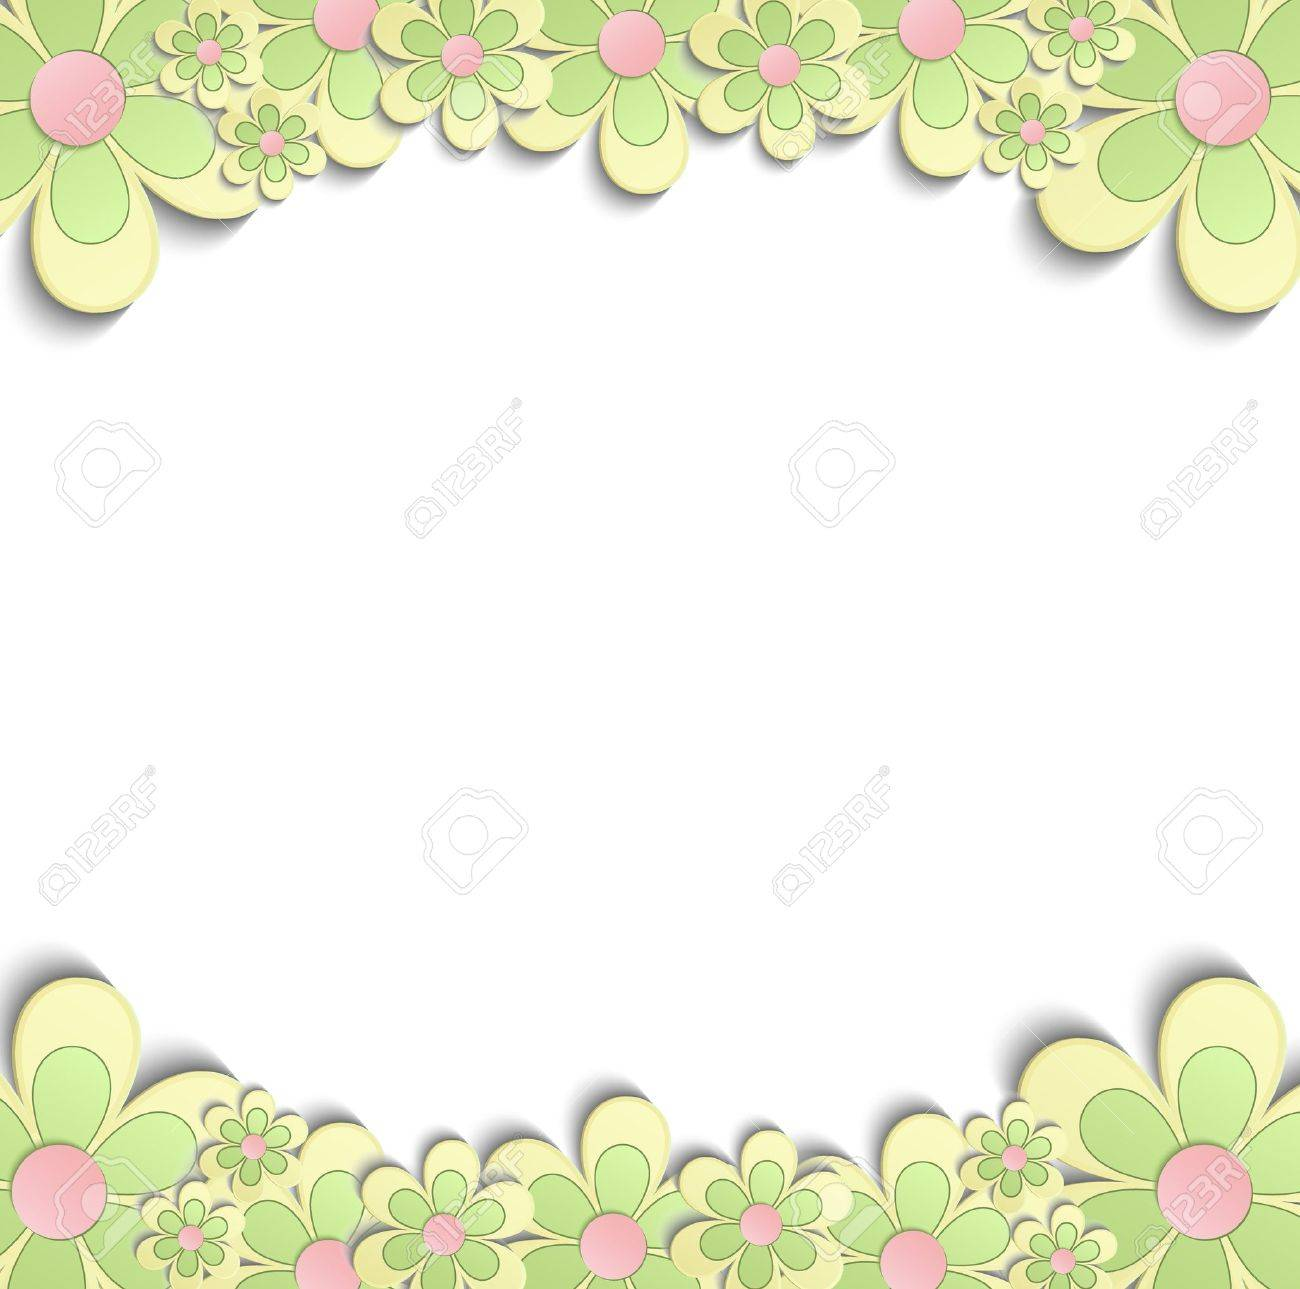 Spring flowers border 3d yellow green pink royalty free cliparts spring flowers border 3d yellow green pink stock vector 55483385 mightylinksfo